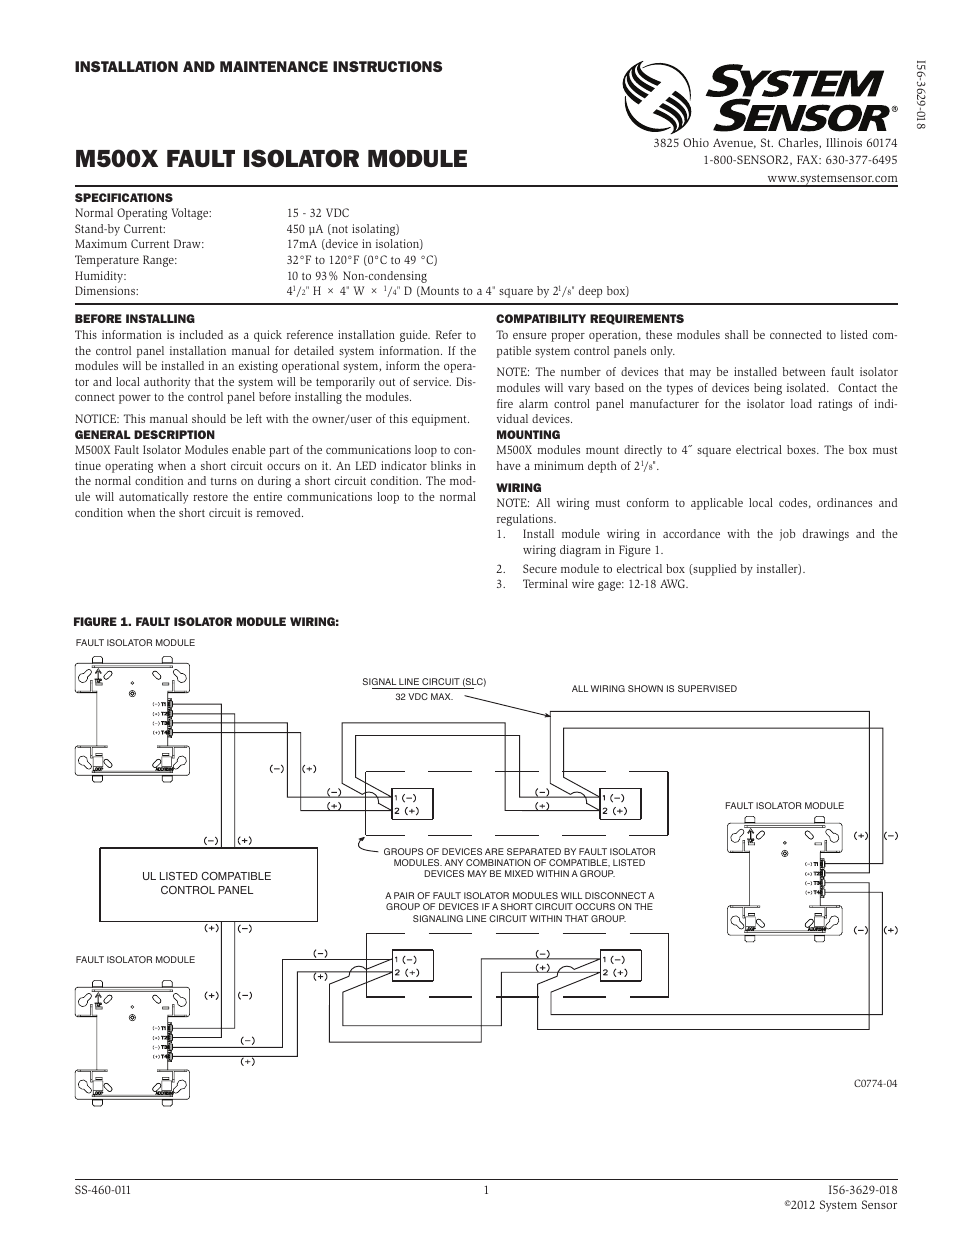 System Sensor M500x User Manual 1 Page A Short Circuit Occurs When